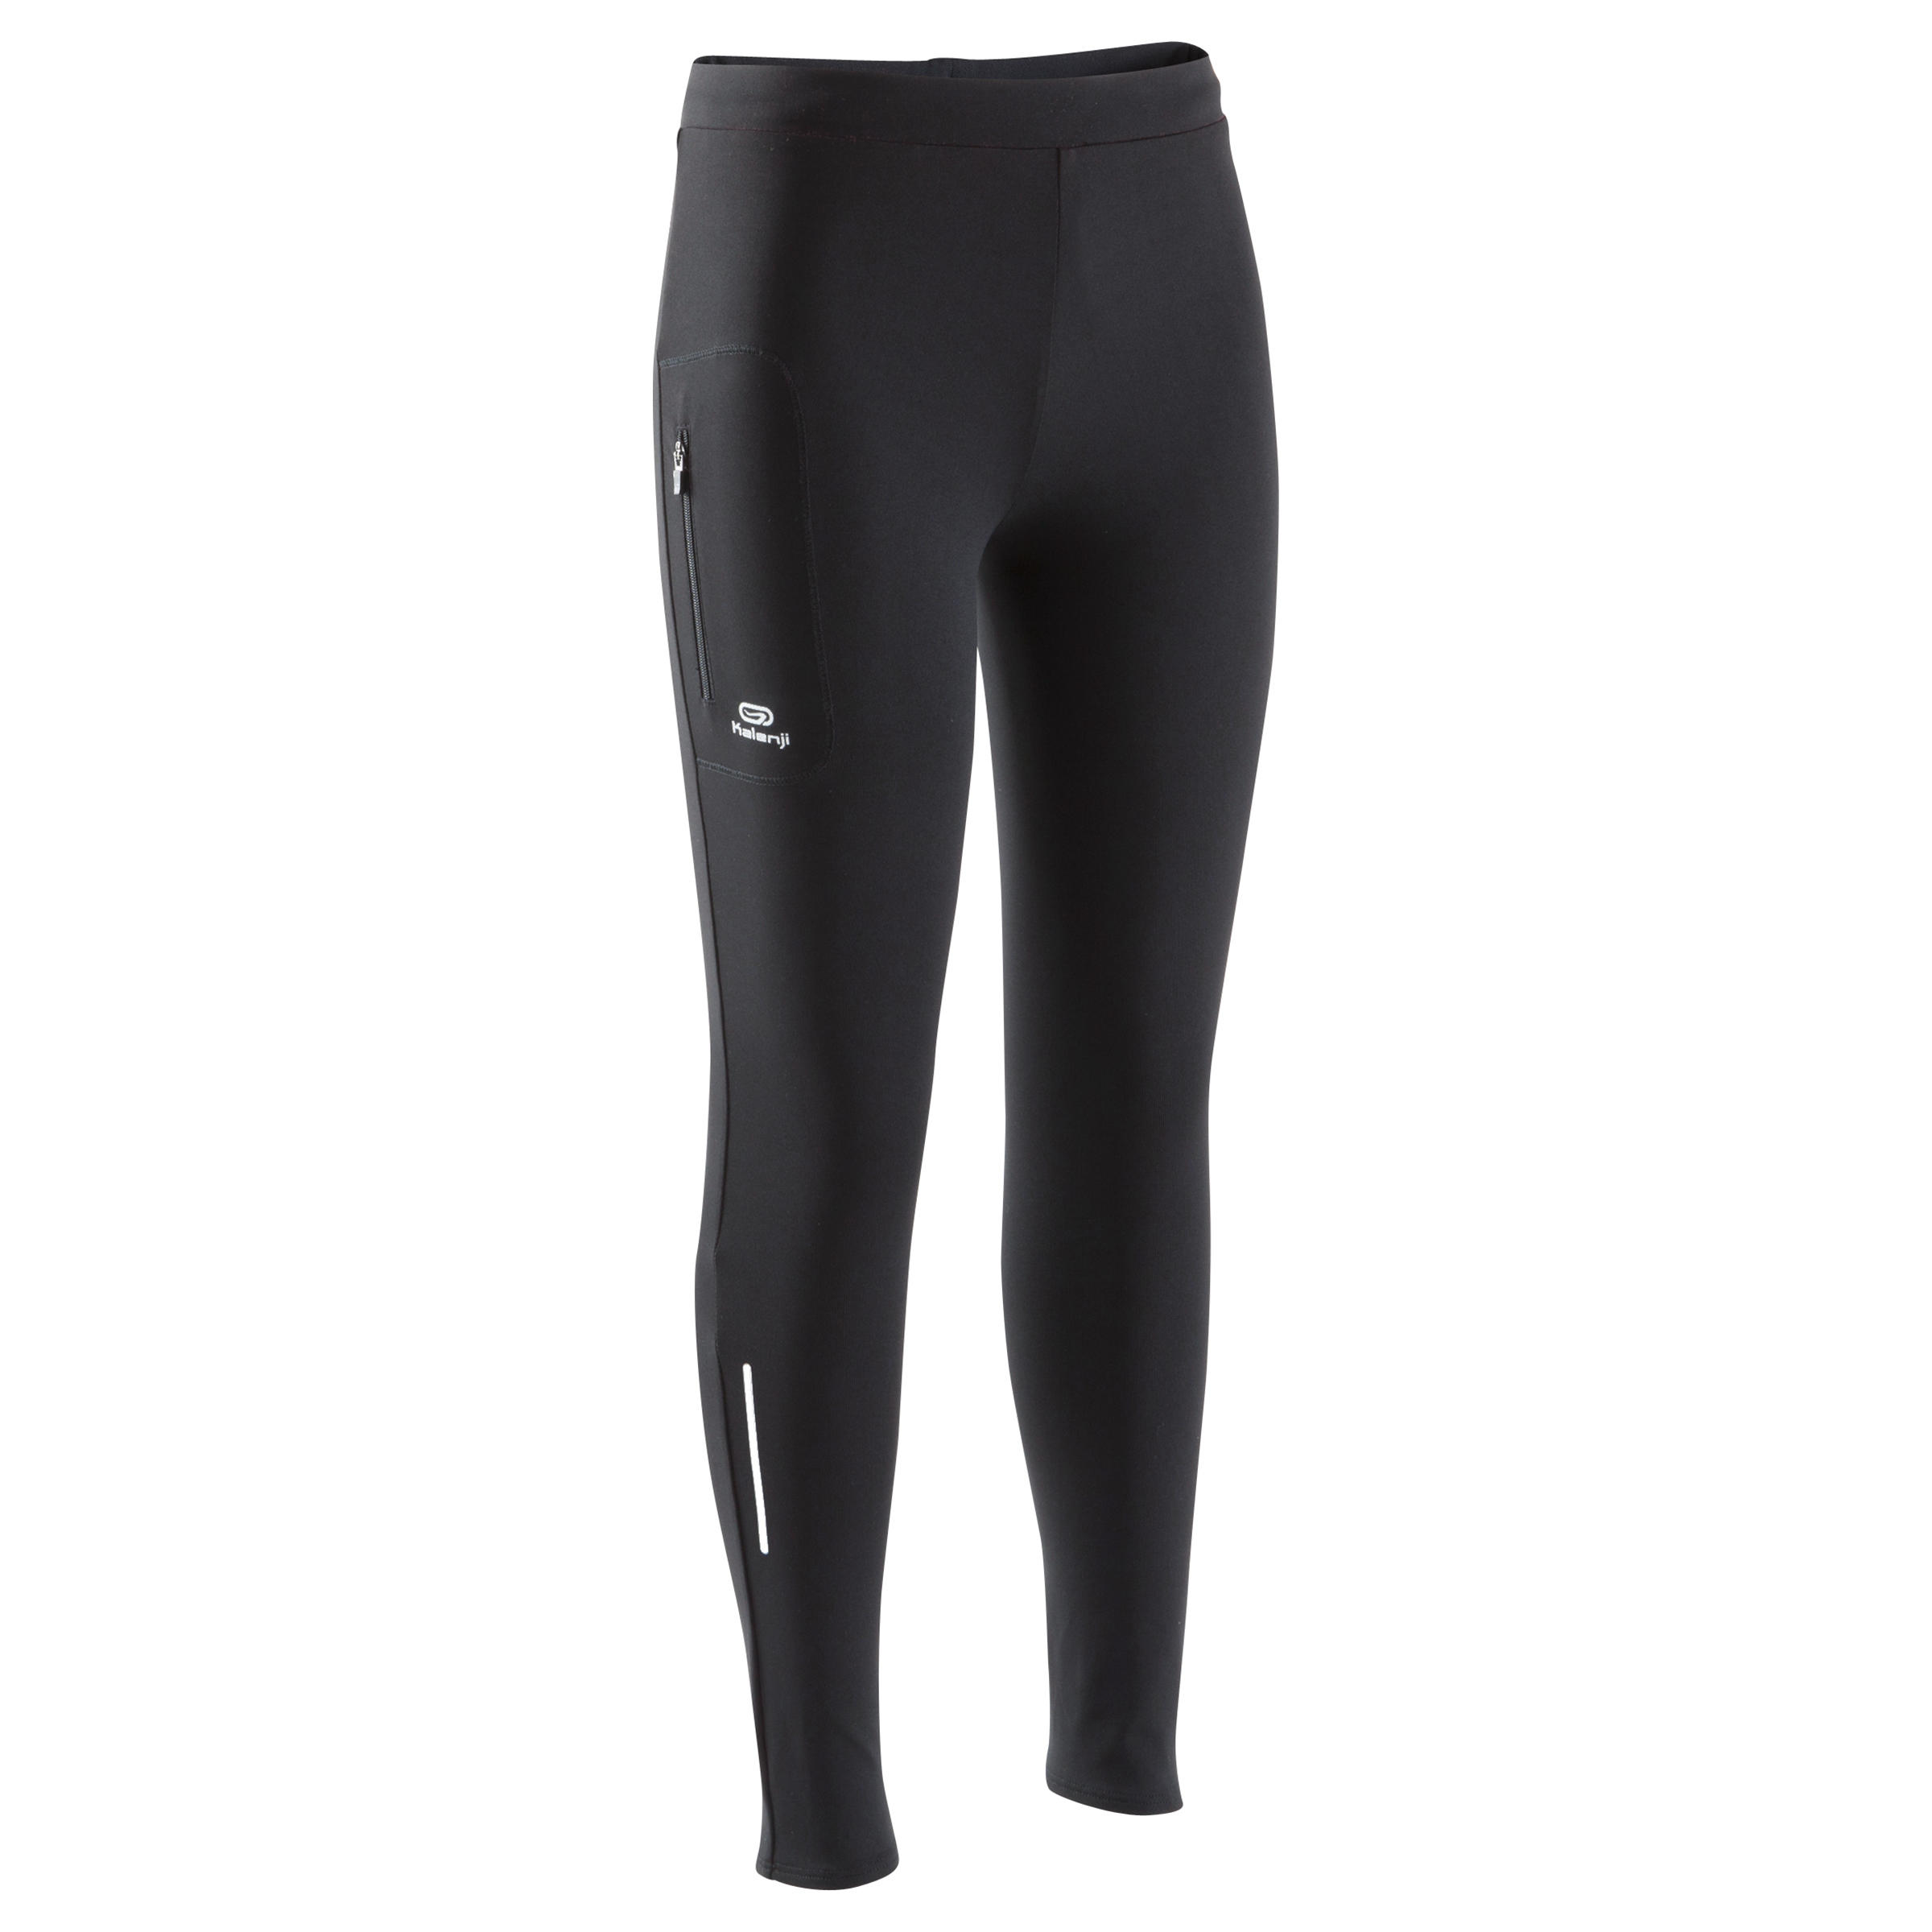 RUN DRY CHILDREN'S ATHLETICS TIGHTS BLACK